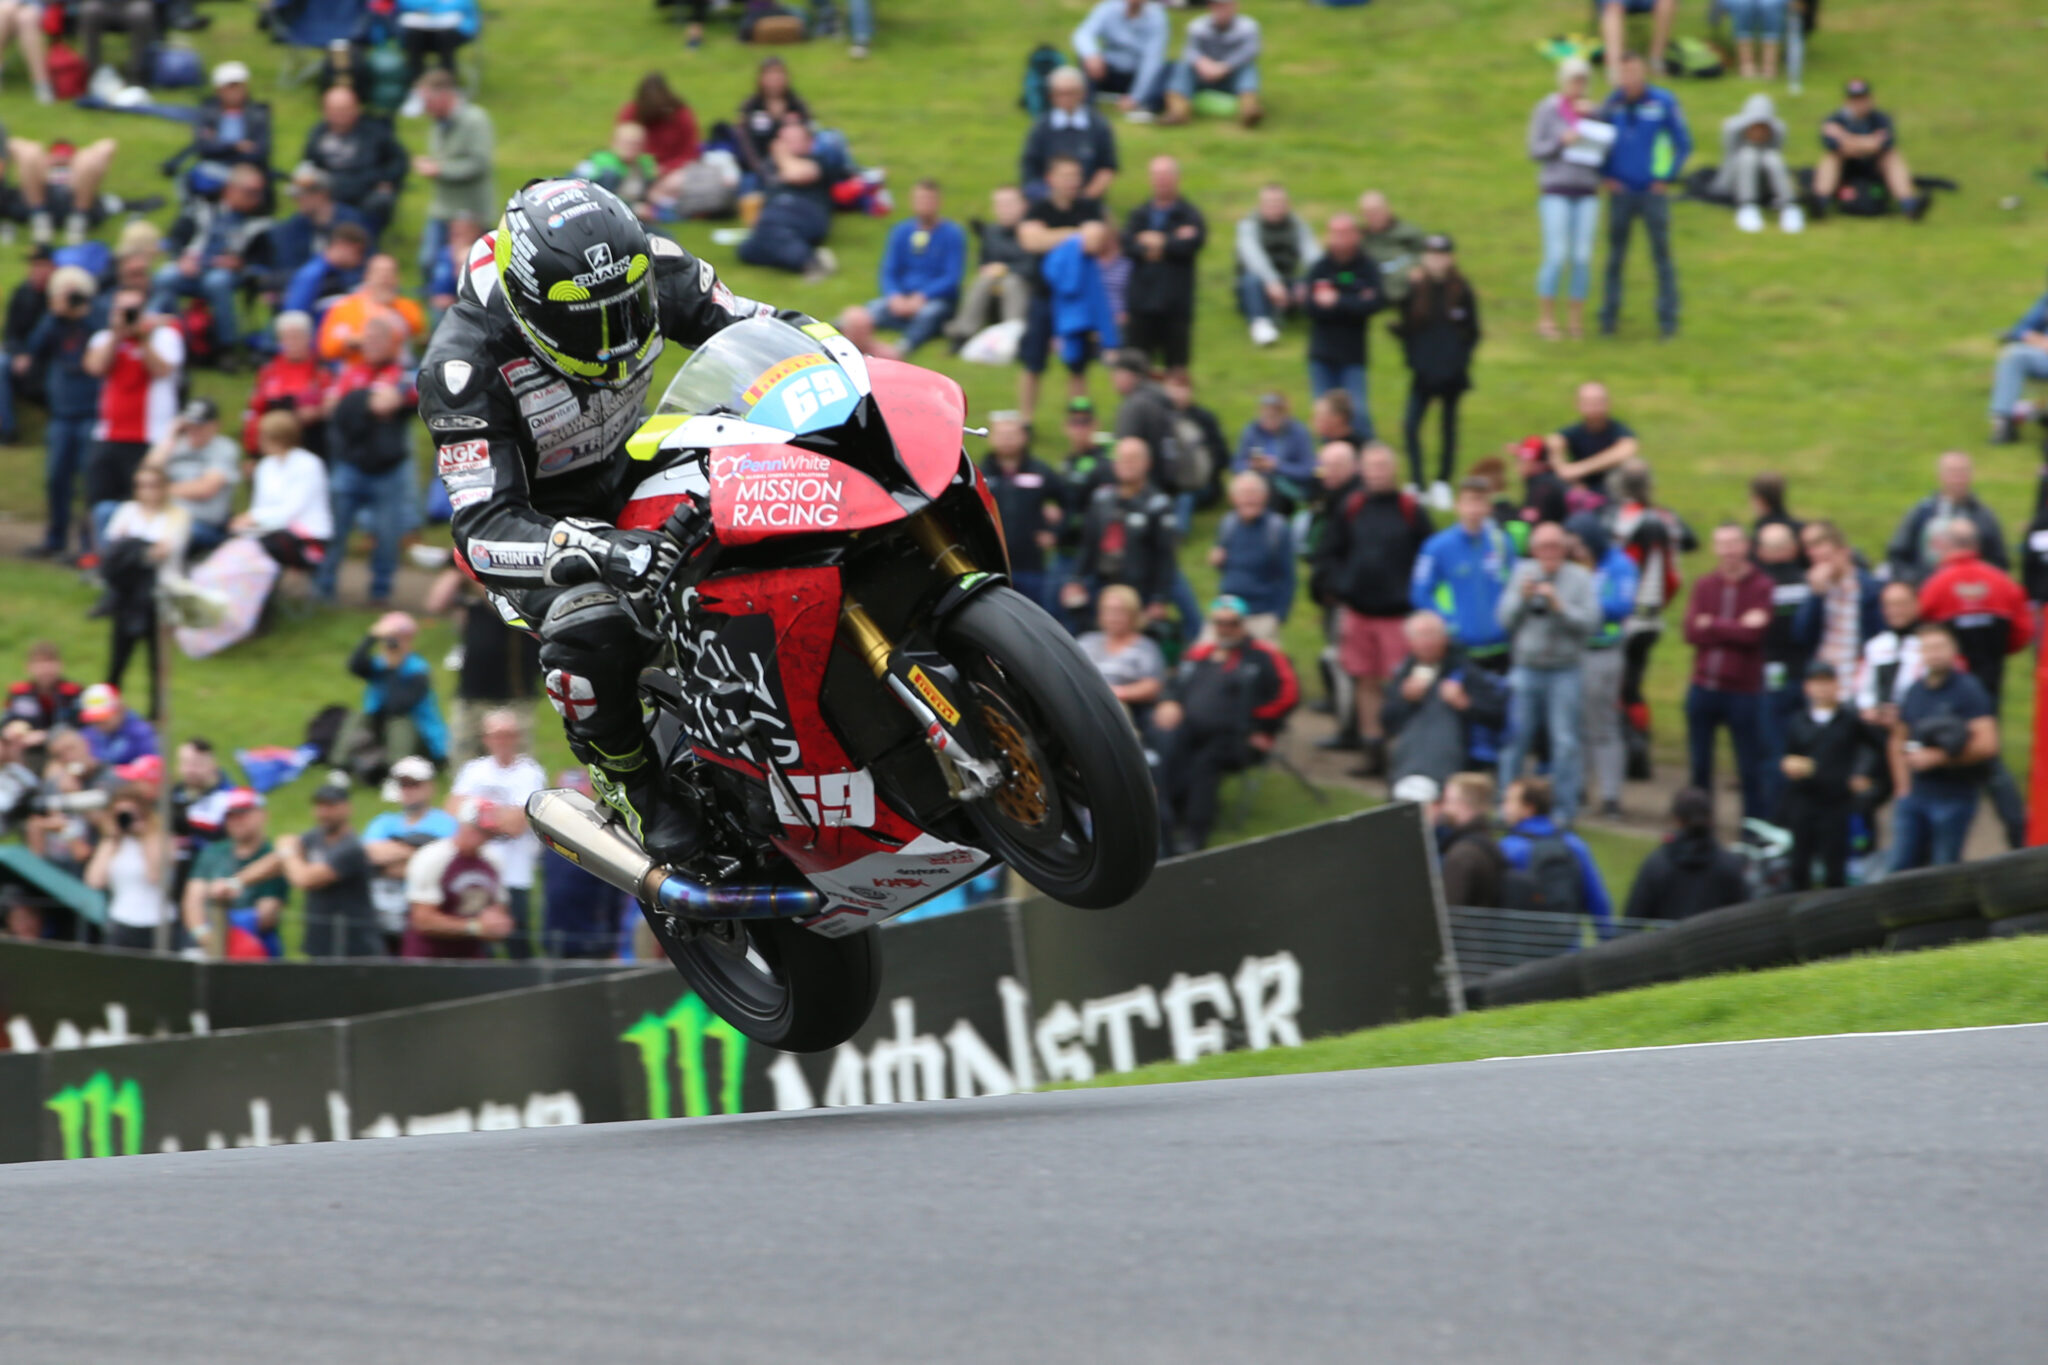 Chrissy Rouse cadwell park mountain